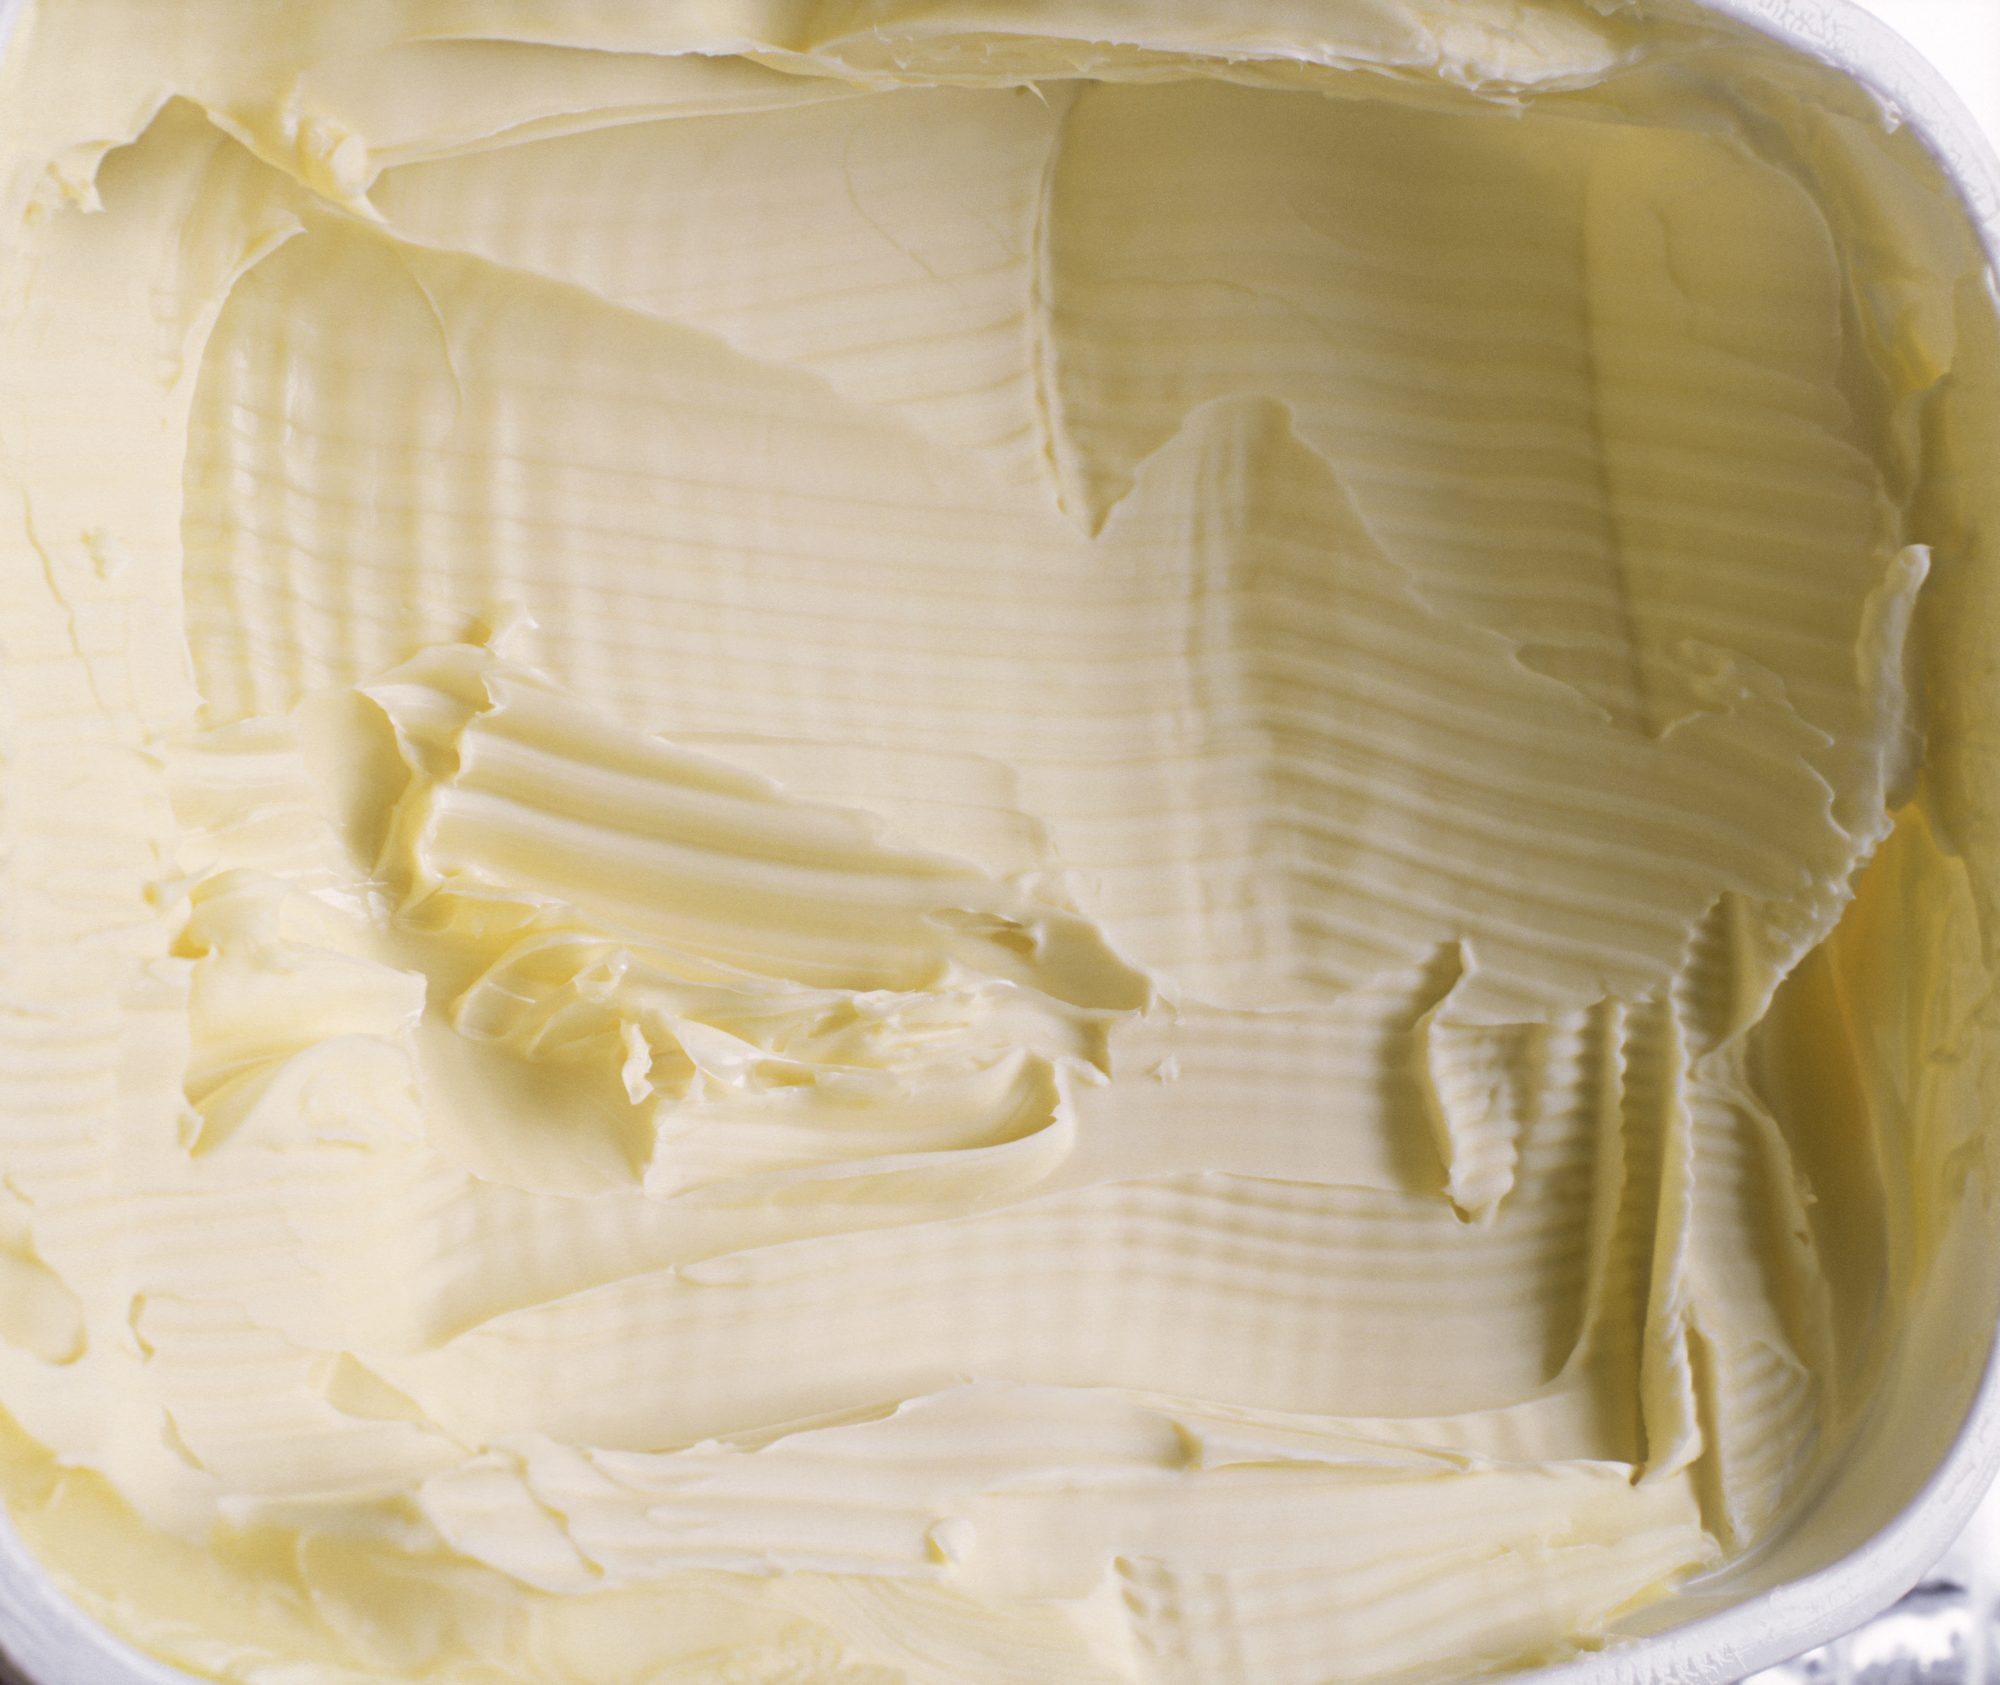 getty-spreadable-butter-image